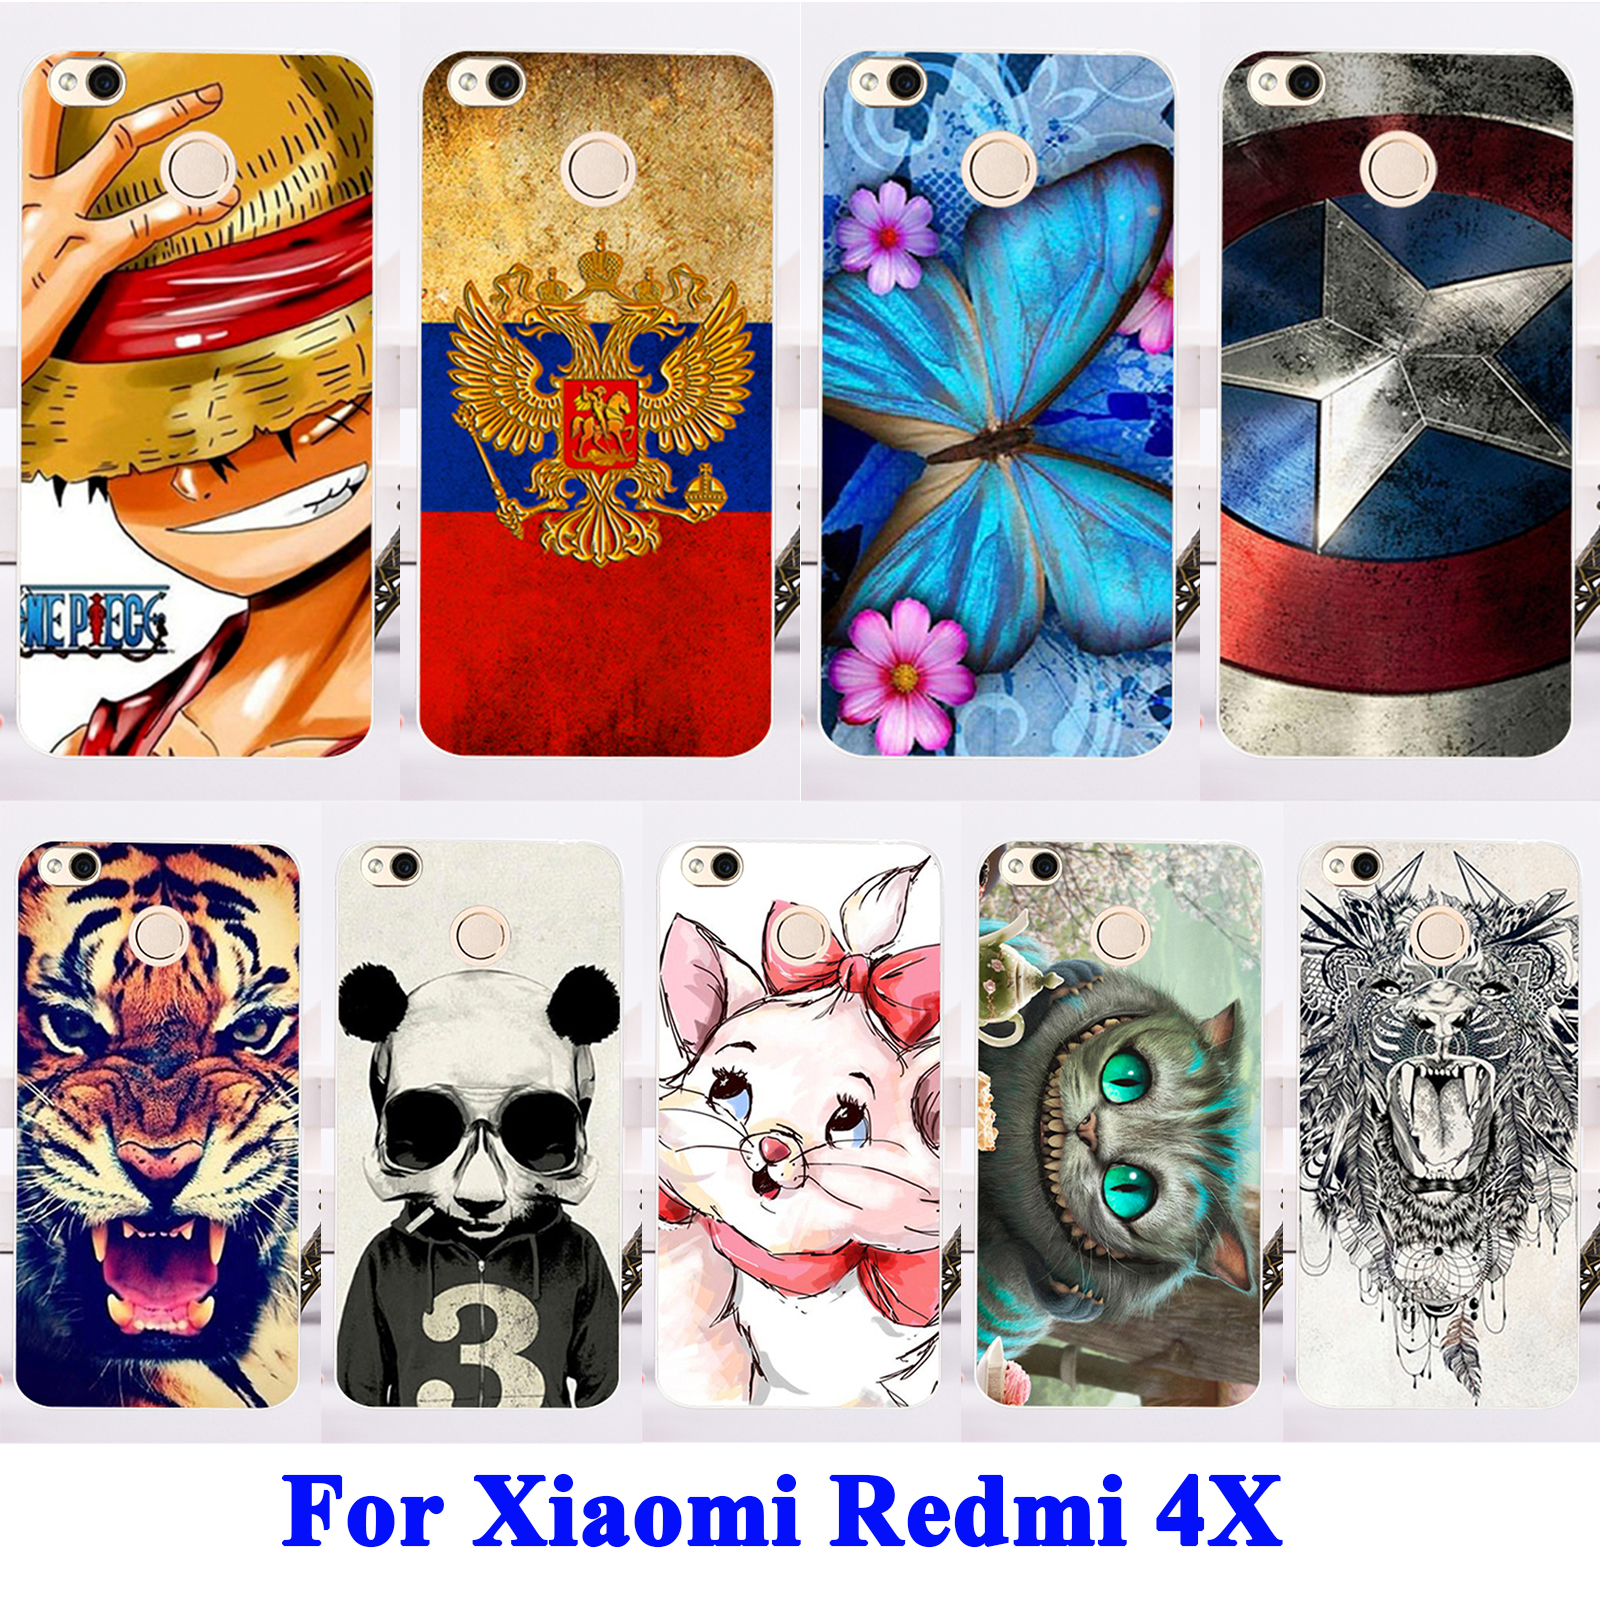 AKABEILA Painted Mobile Phone Cases For Xiaomi Redmi 4X Case Soft TPU Back Covers Painted Shield Smartphone Hood Durable Shell